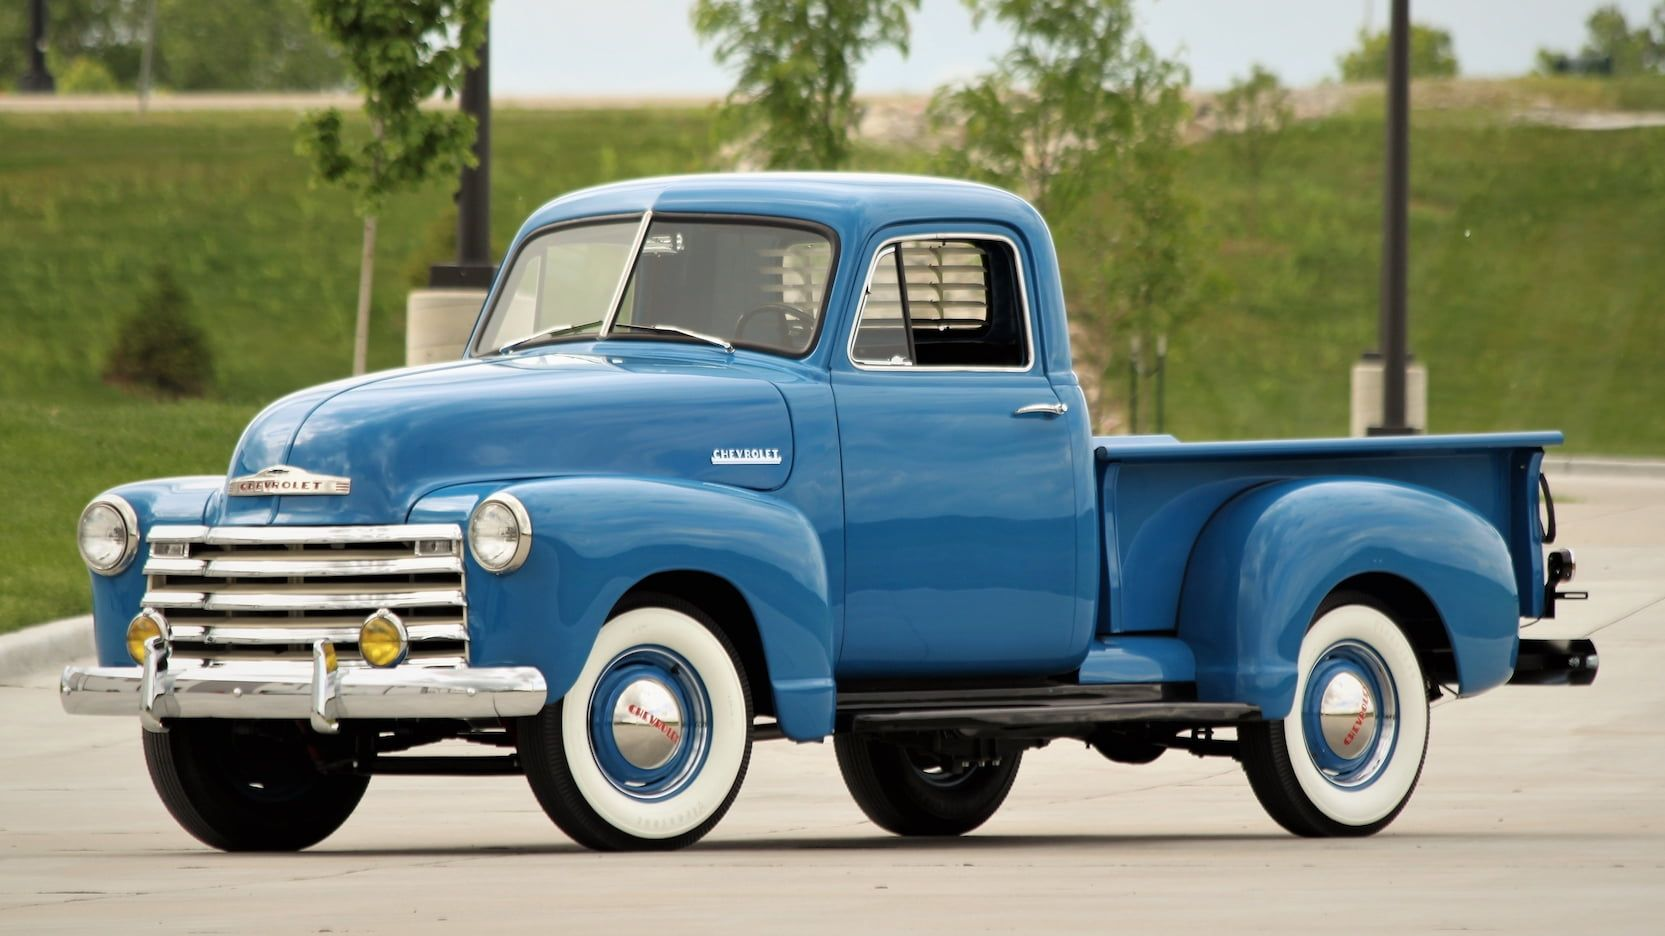 1951 chevrolet 3100 pickup presented as lot f87 at kissimmee fl chevrolet 3100 chevrolet chevy 3100 1951 chevrolet 3100 pickup presented as